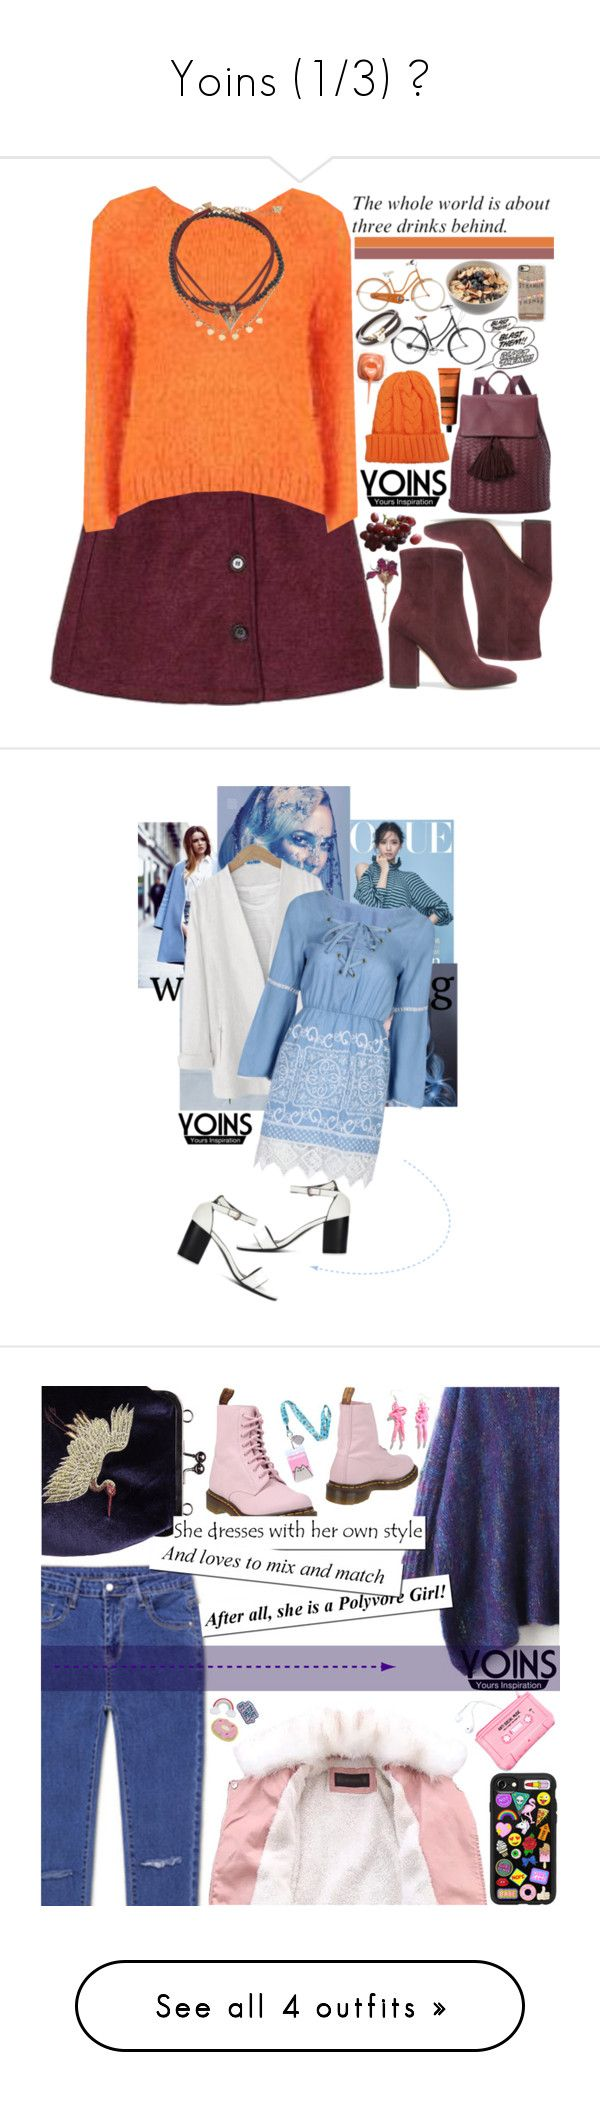 """""""Yoins (1/3) ♥"""" by av-anul ❤ liked on Polyvore featuring Deux Lux, Gianvito Rossi, GUESS, Aesop, Simons, Casetify, WithChic, Dr. Martens, Lazy Oaf and Pusheen"""